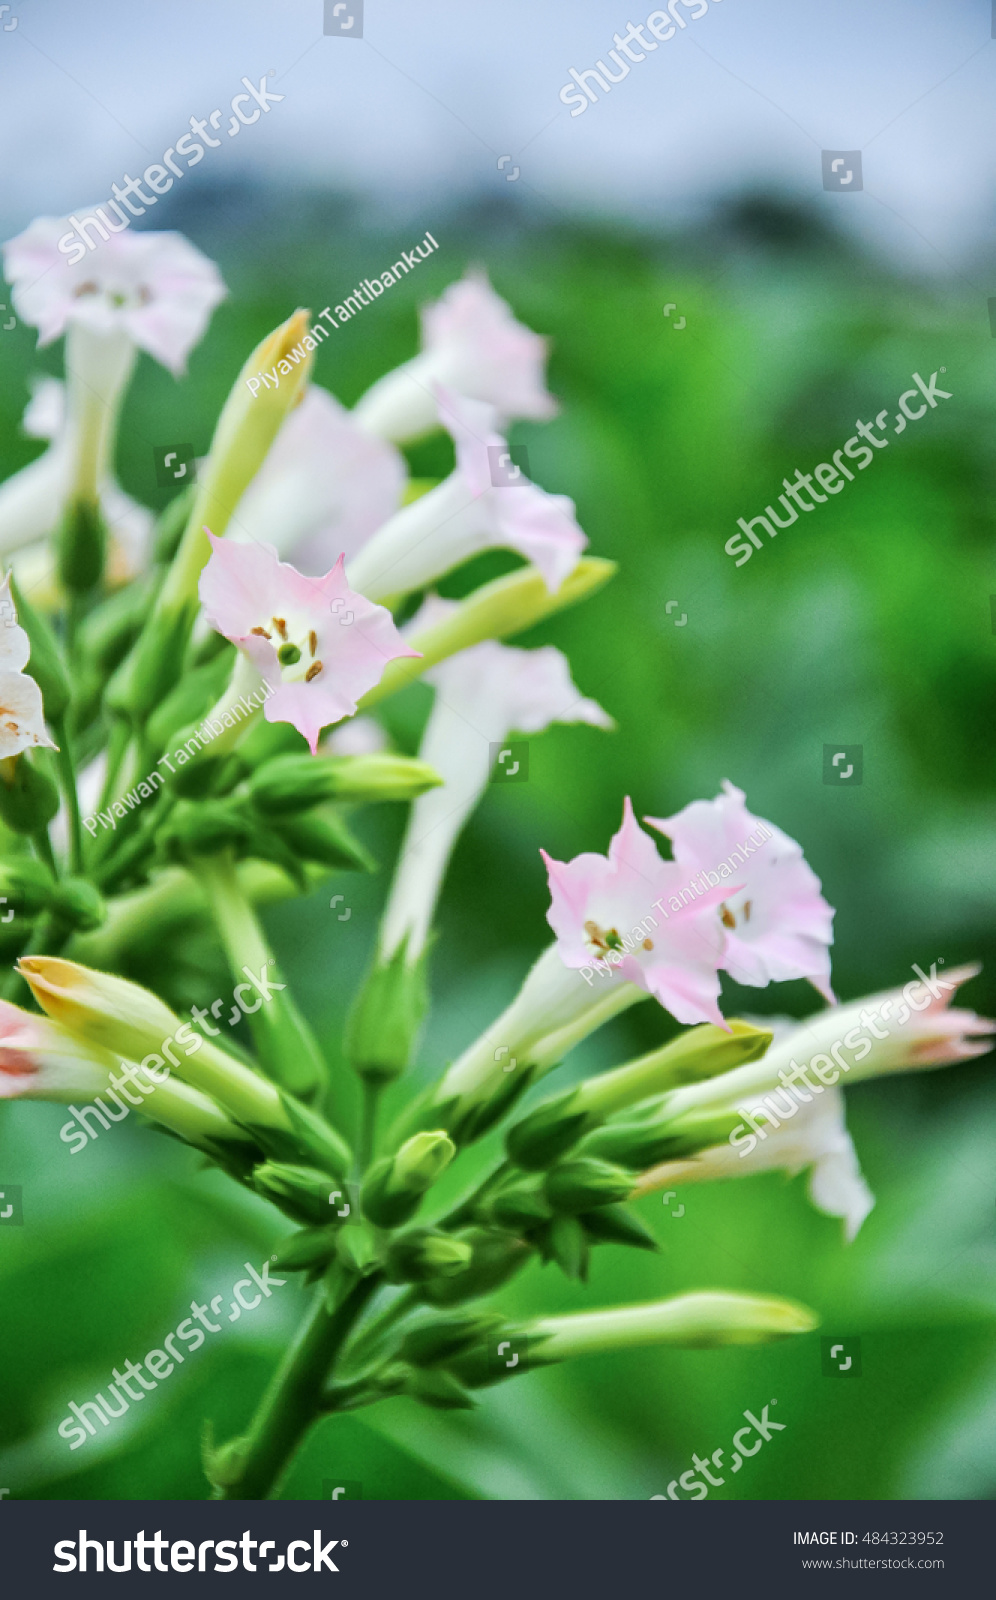 Pinkish Tobacco Plant Flowers Scientific Name Stock Photo (Edit Now